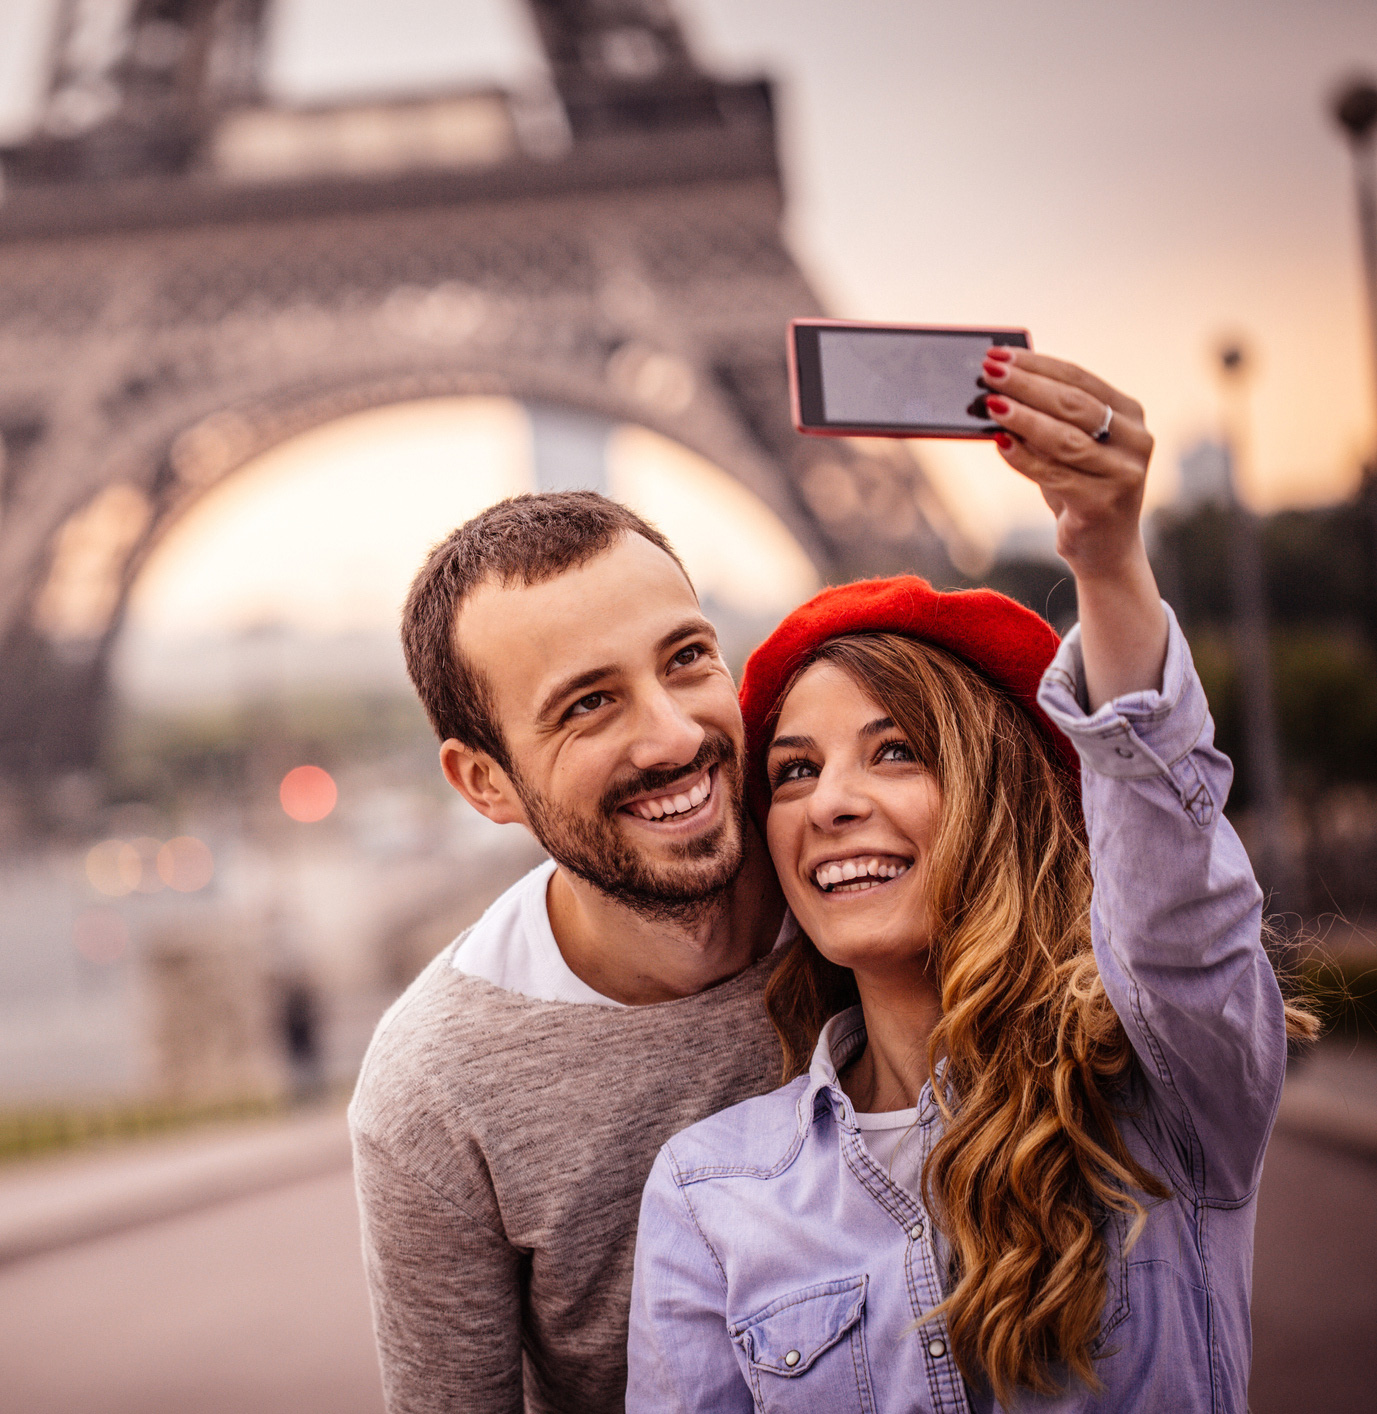 French couple taking pictures for social media